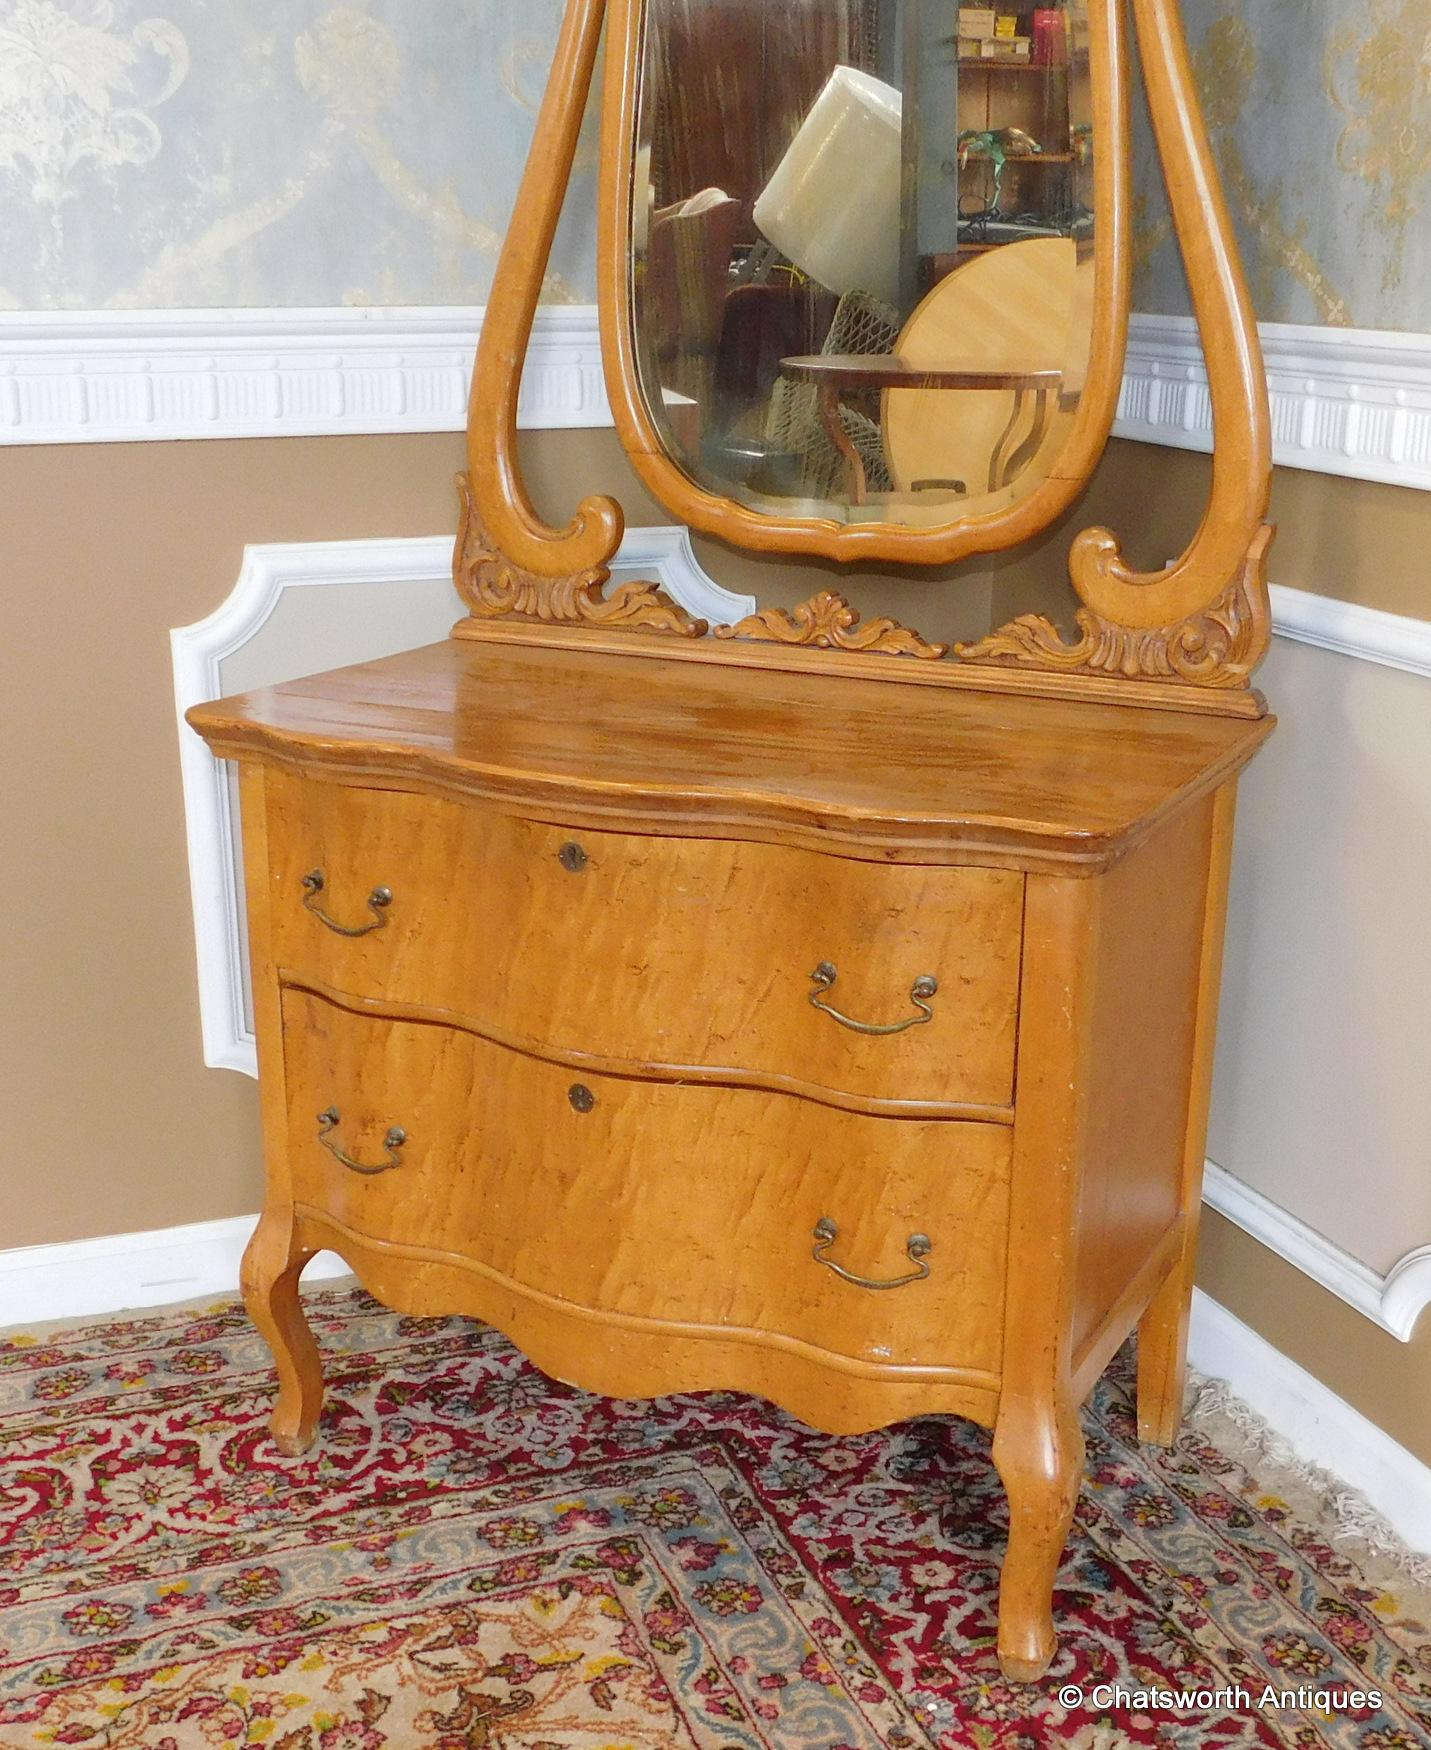 Roll over Large image to magnify, click Large image to zoom - Antique Late Victorian Birds-Eye Maple 2 Drawer Princess Dresser W